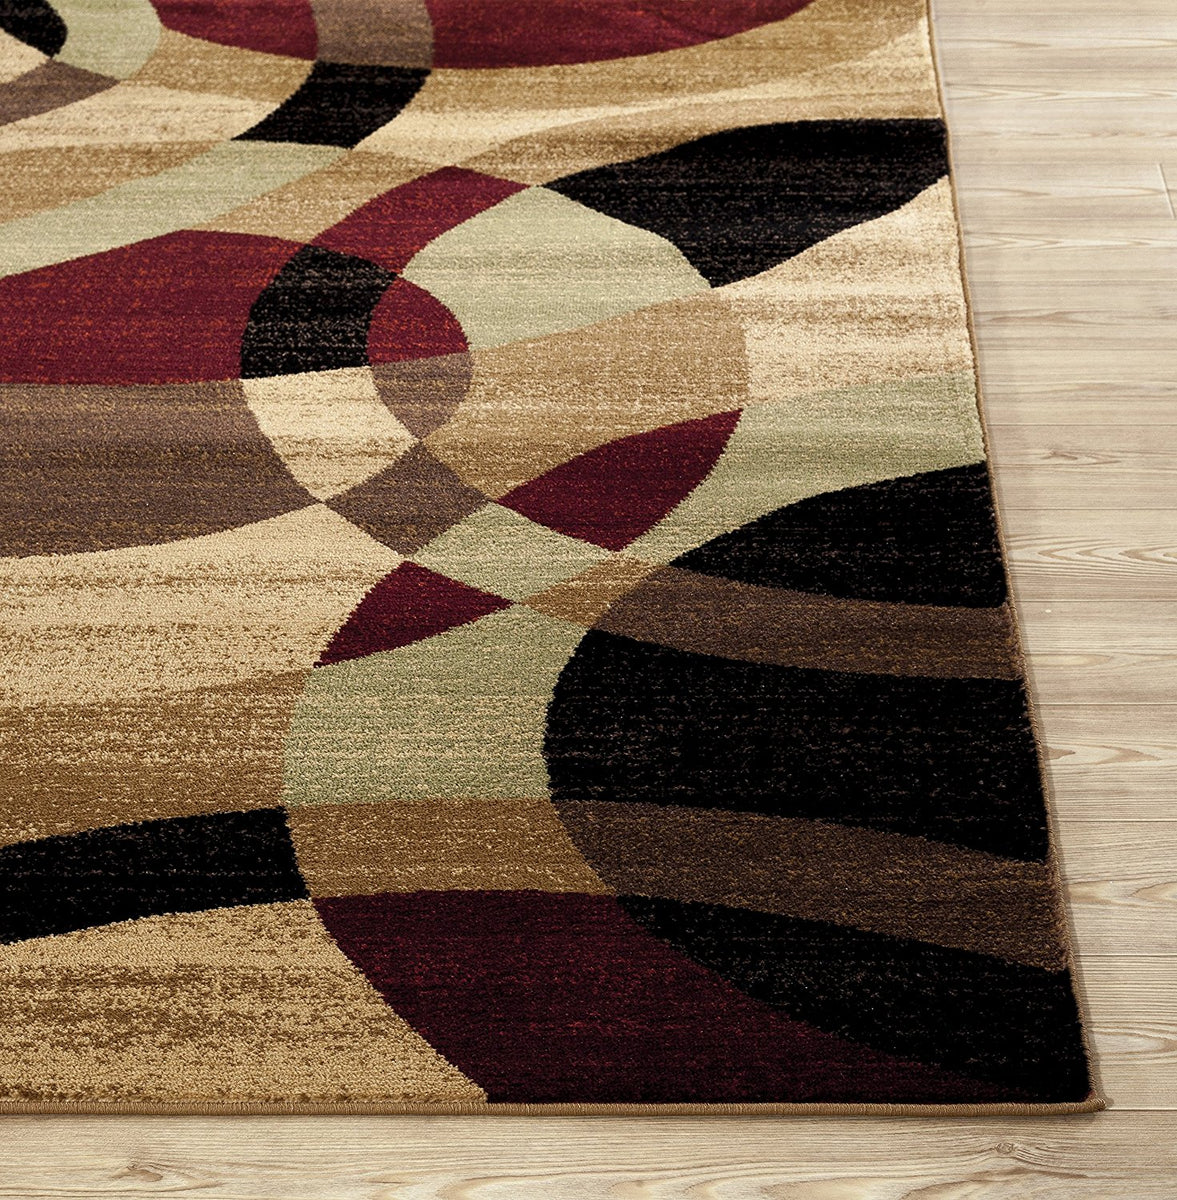 Multi Color Circles Soft Area Rug Modern Rugs And Decor